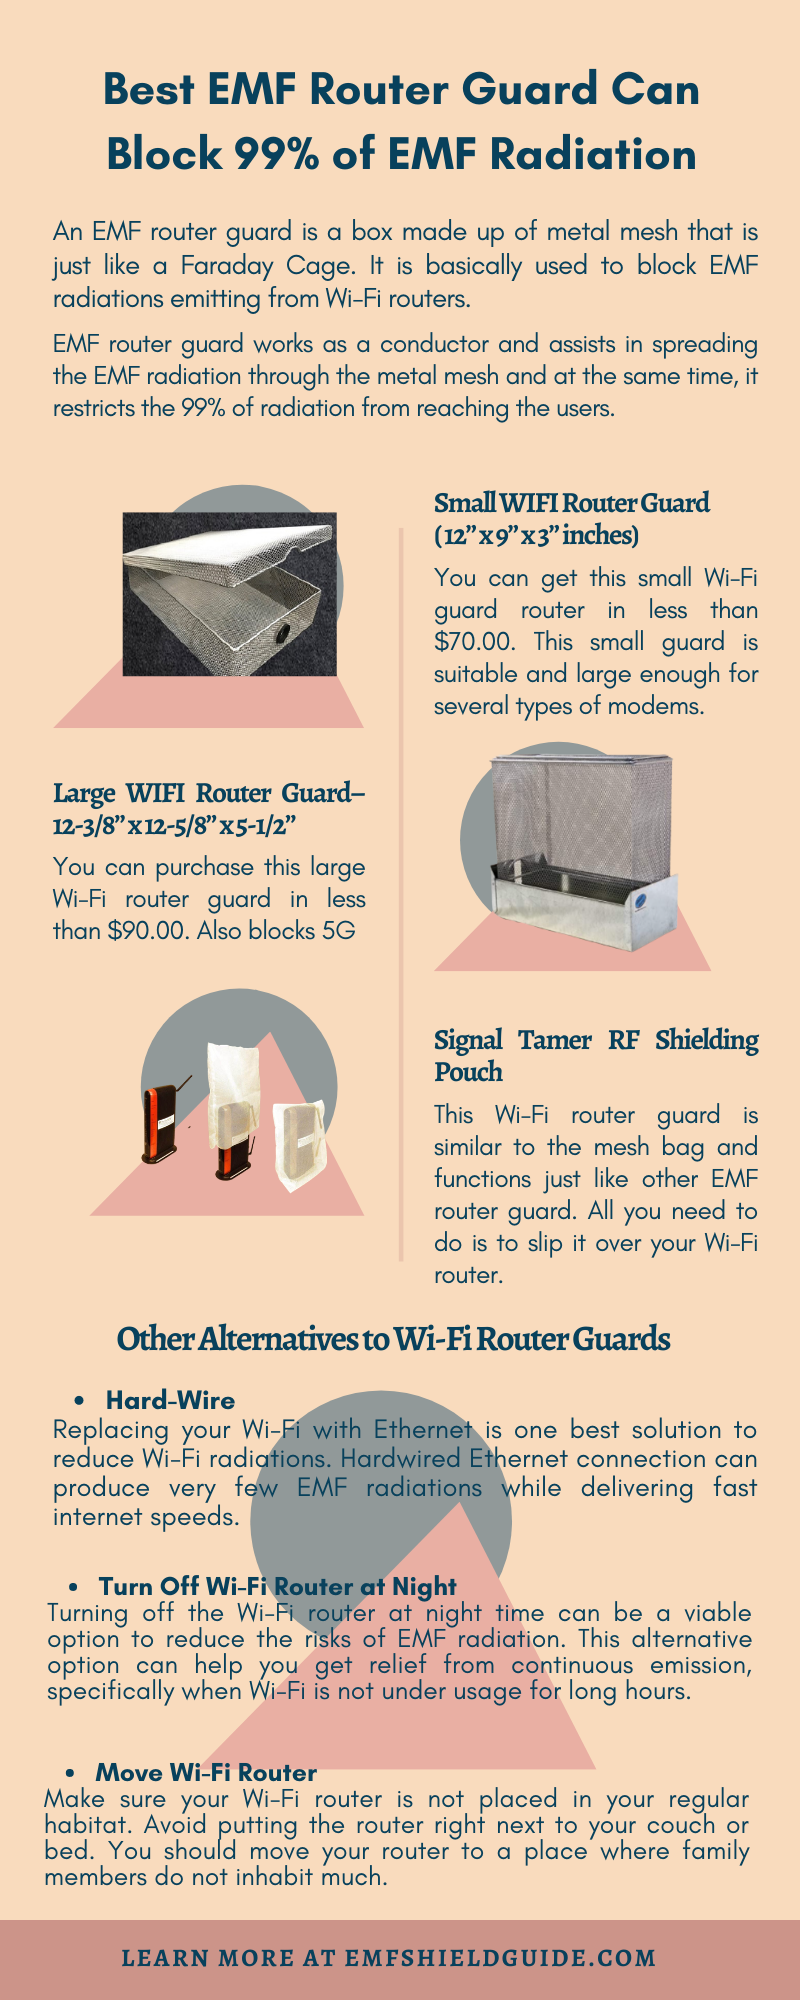 EMF router guard